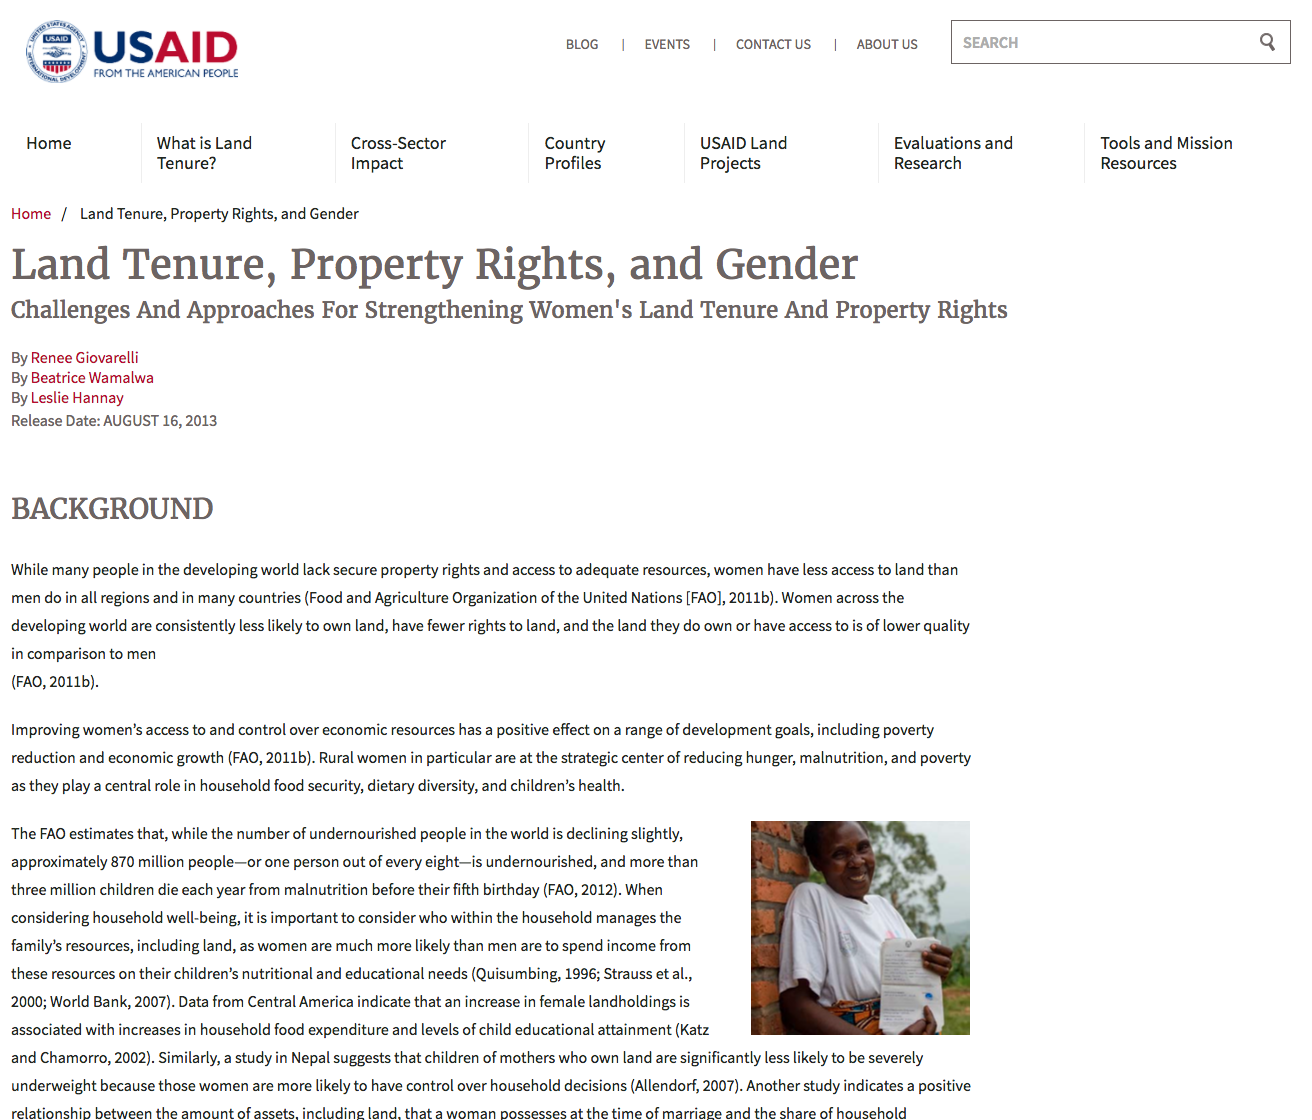 Land Tenure, Property Rights, and Gender cover